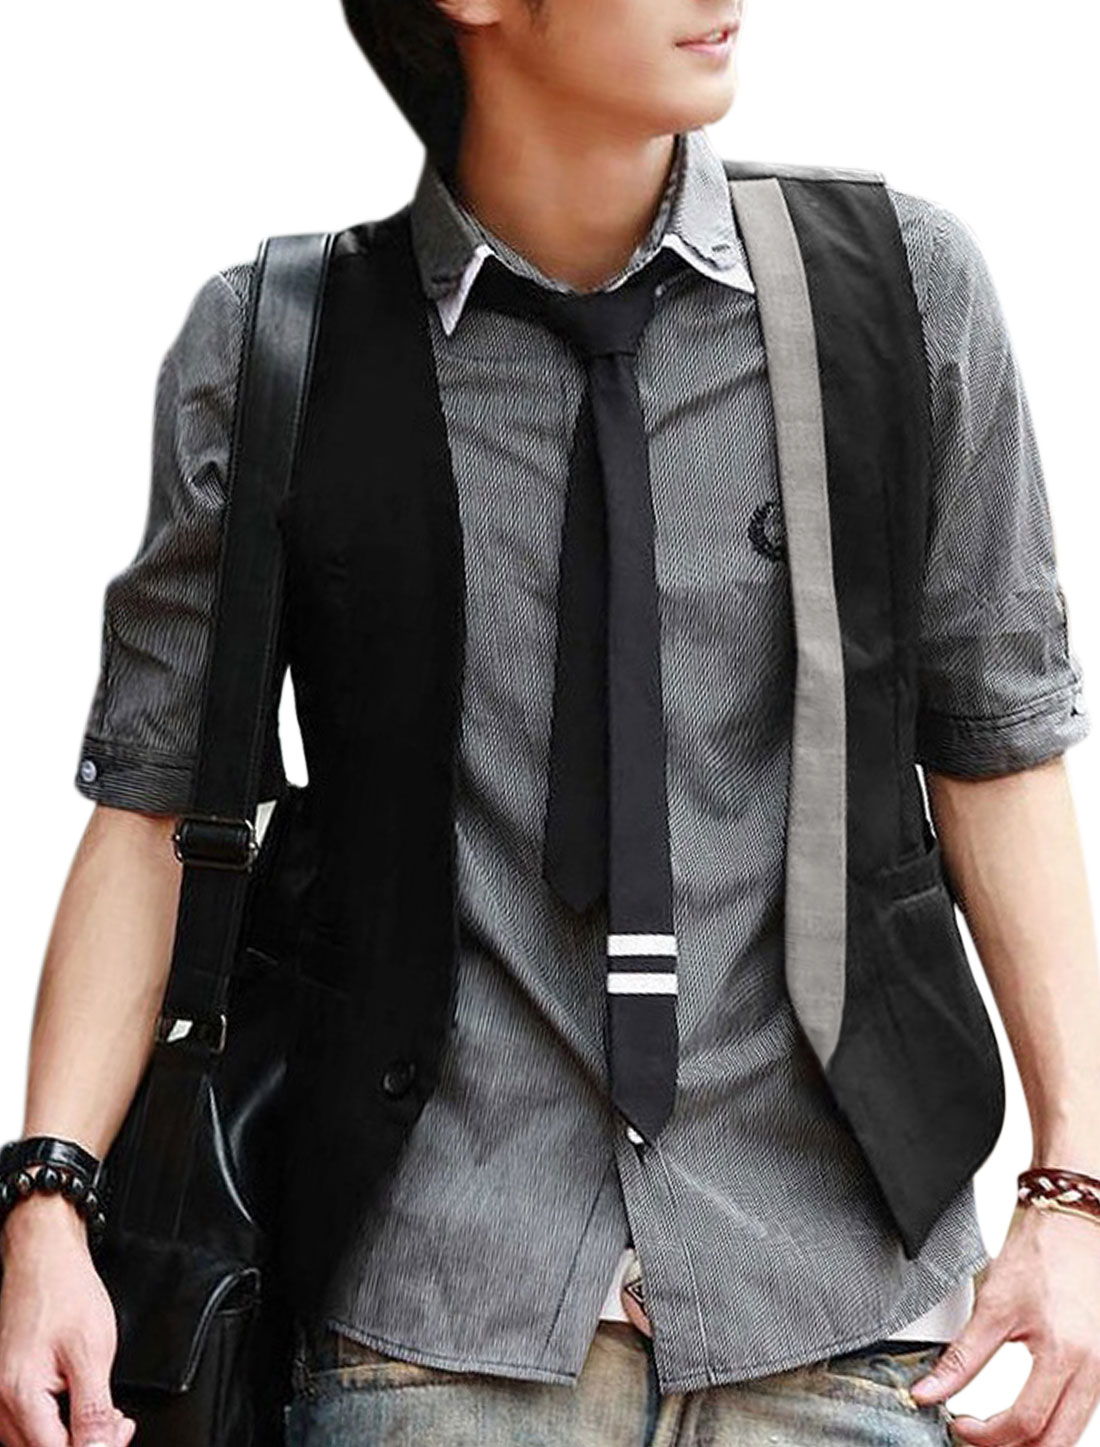 Men Deep V Neck One Button Closure Metal Buckle Back Casual Vests Black S